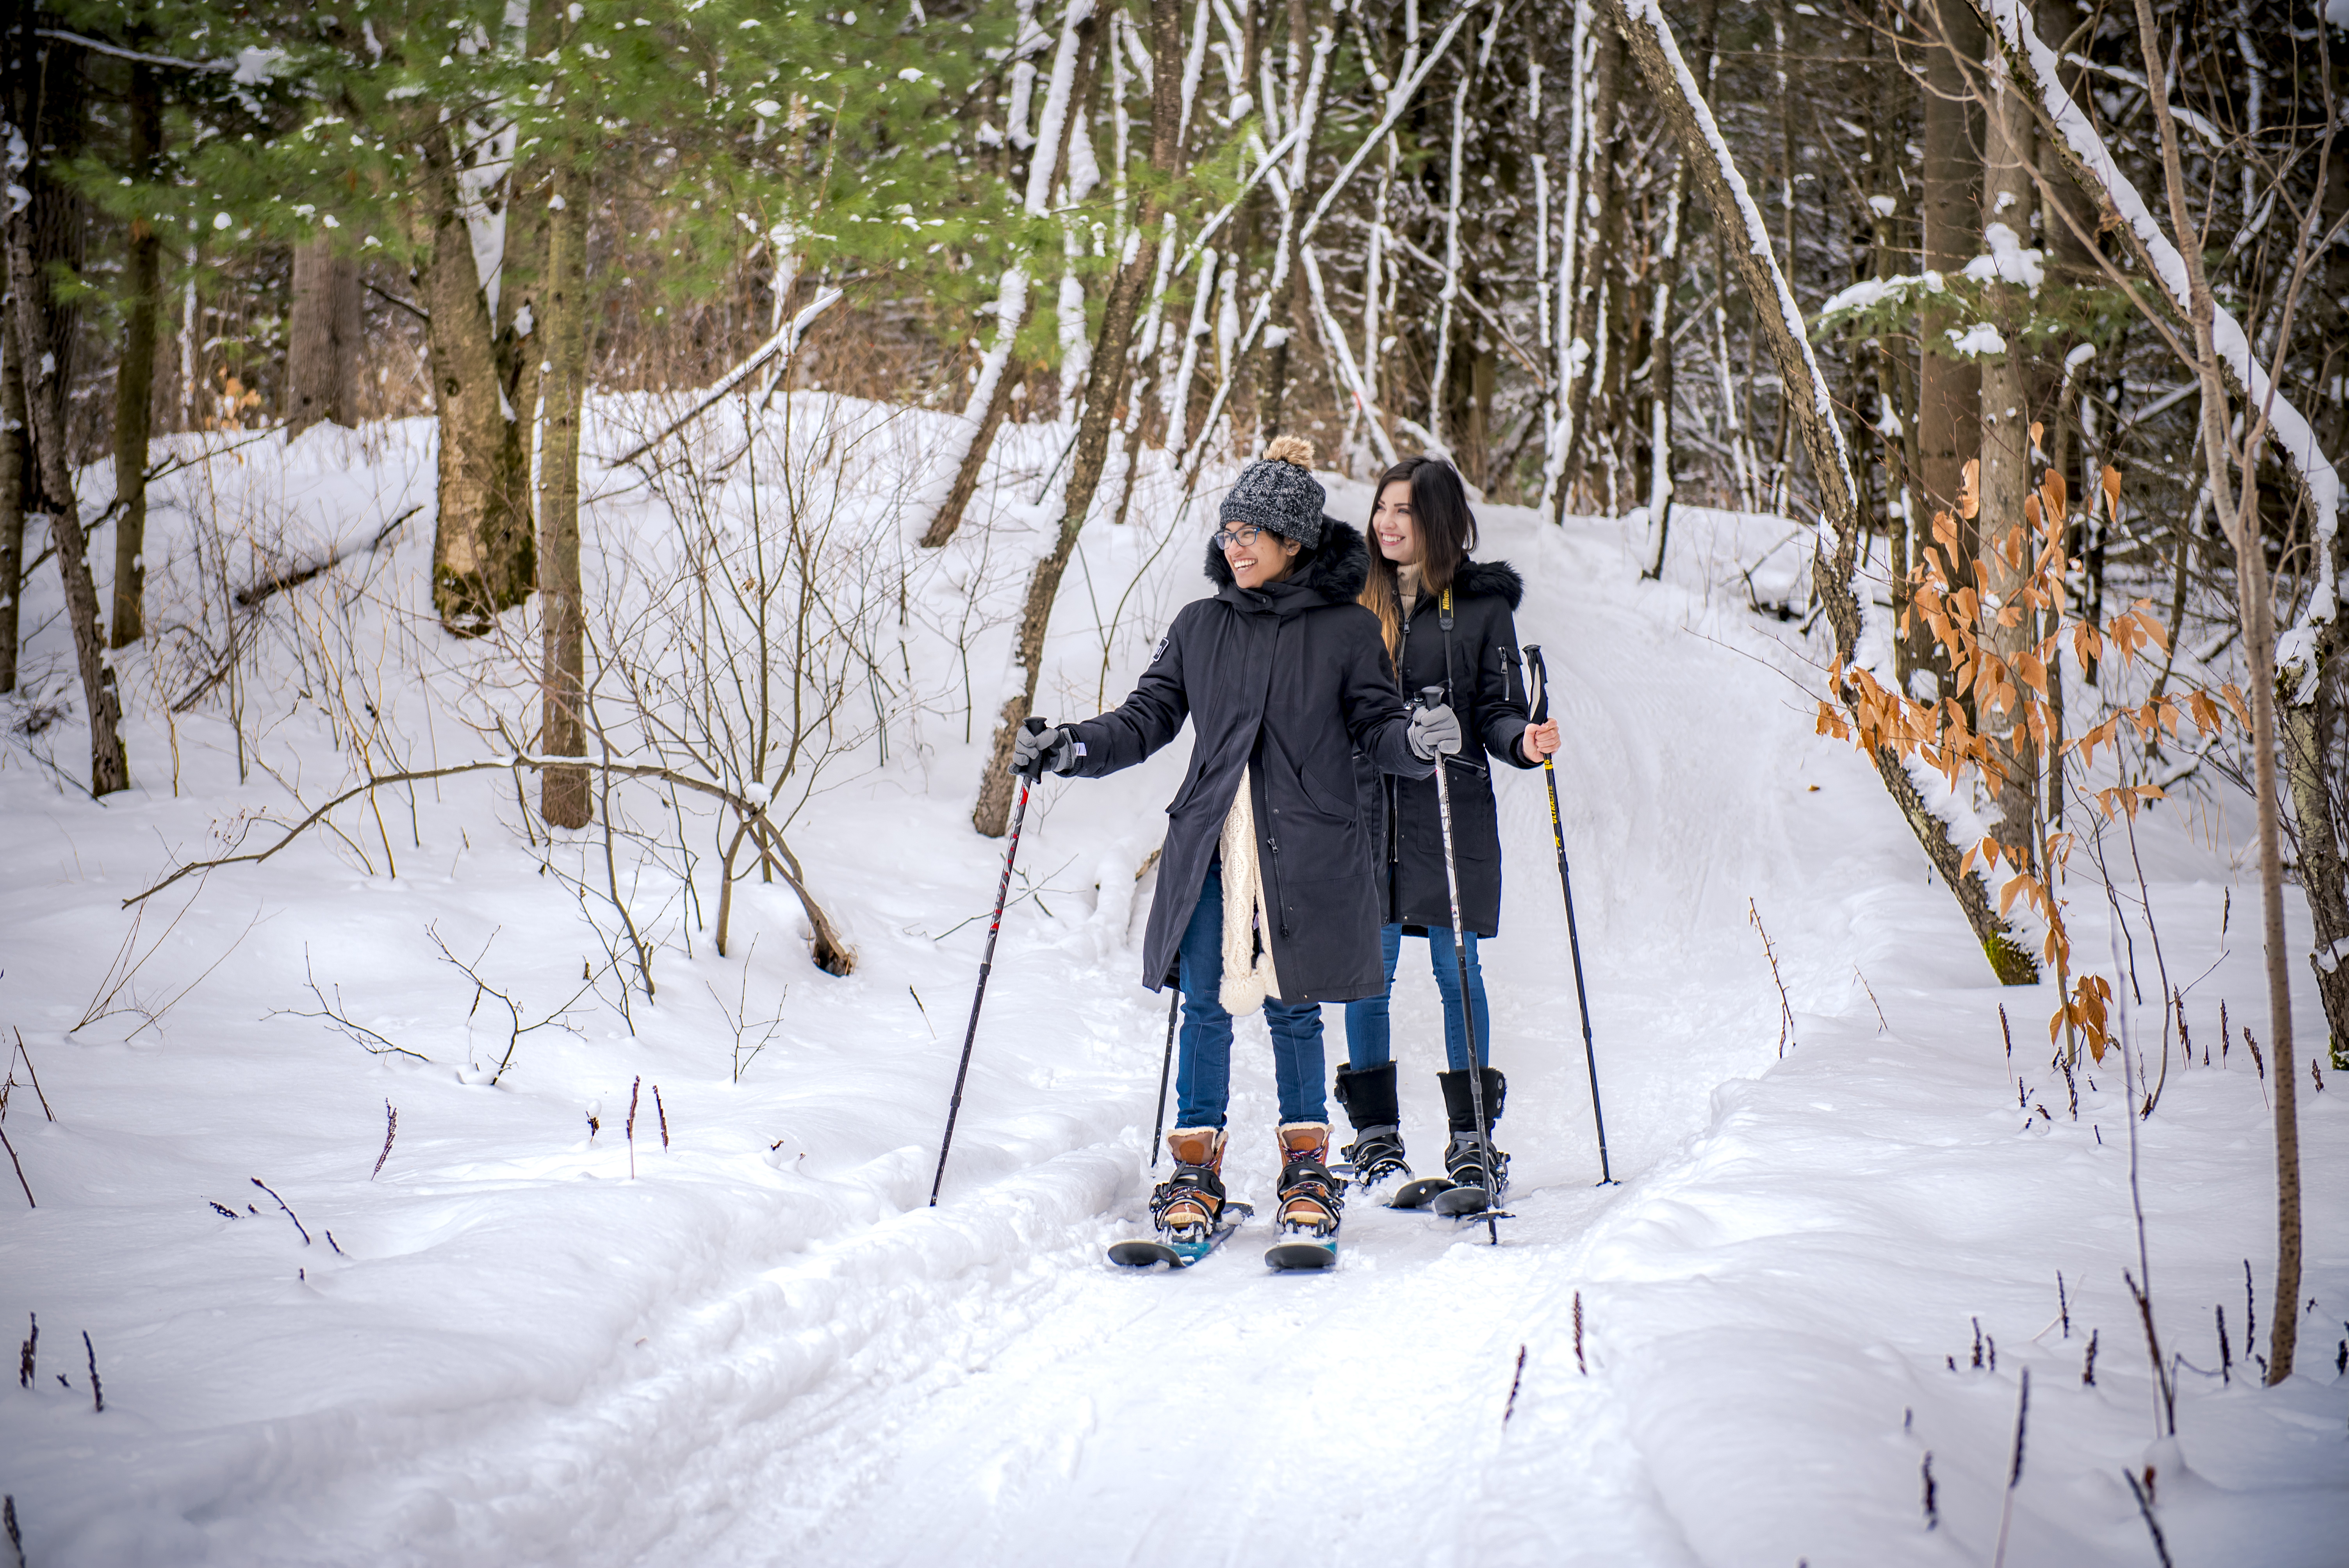 There's plenty to do in Muskoka during the wintertime, including backcountry skiing with companies like Livoutside.